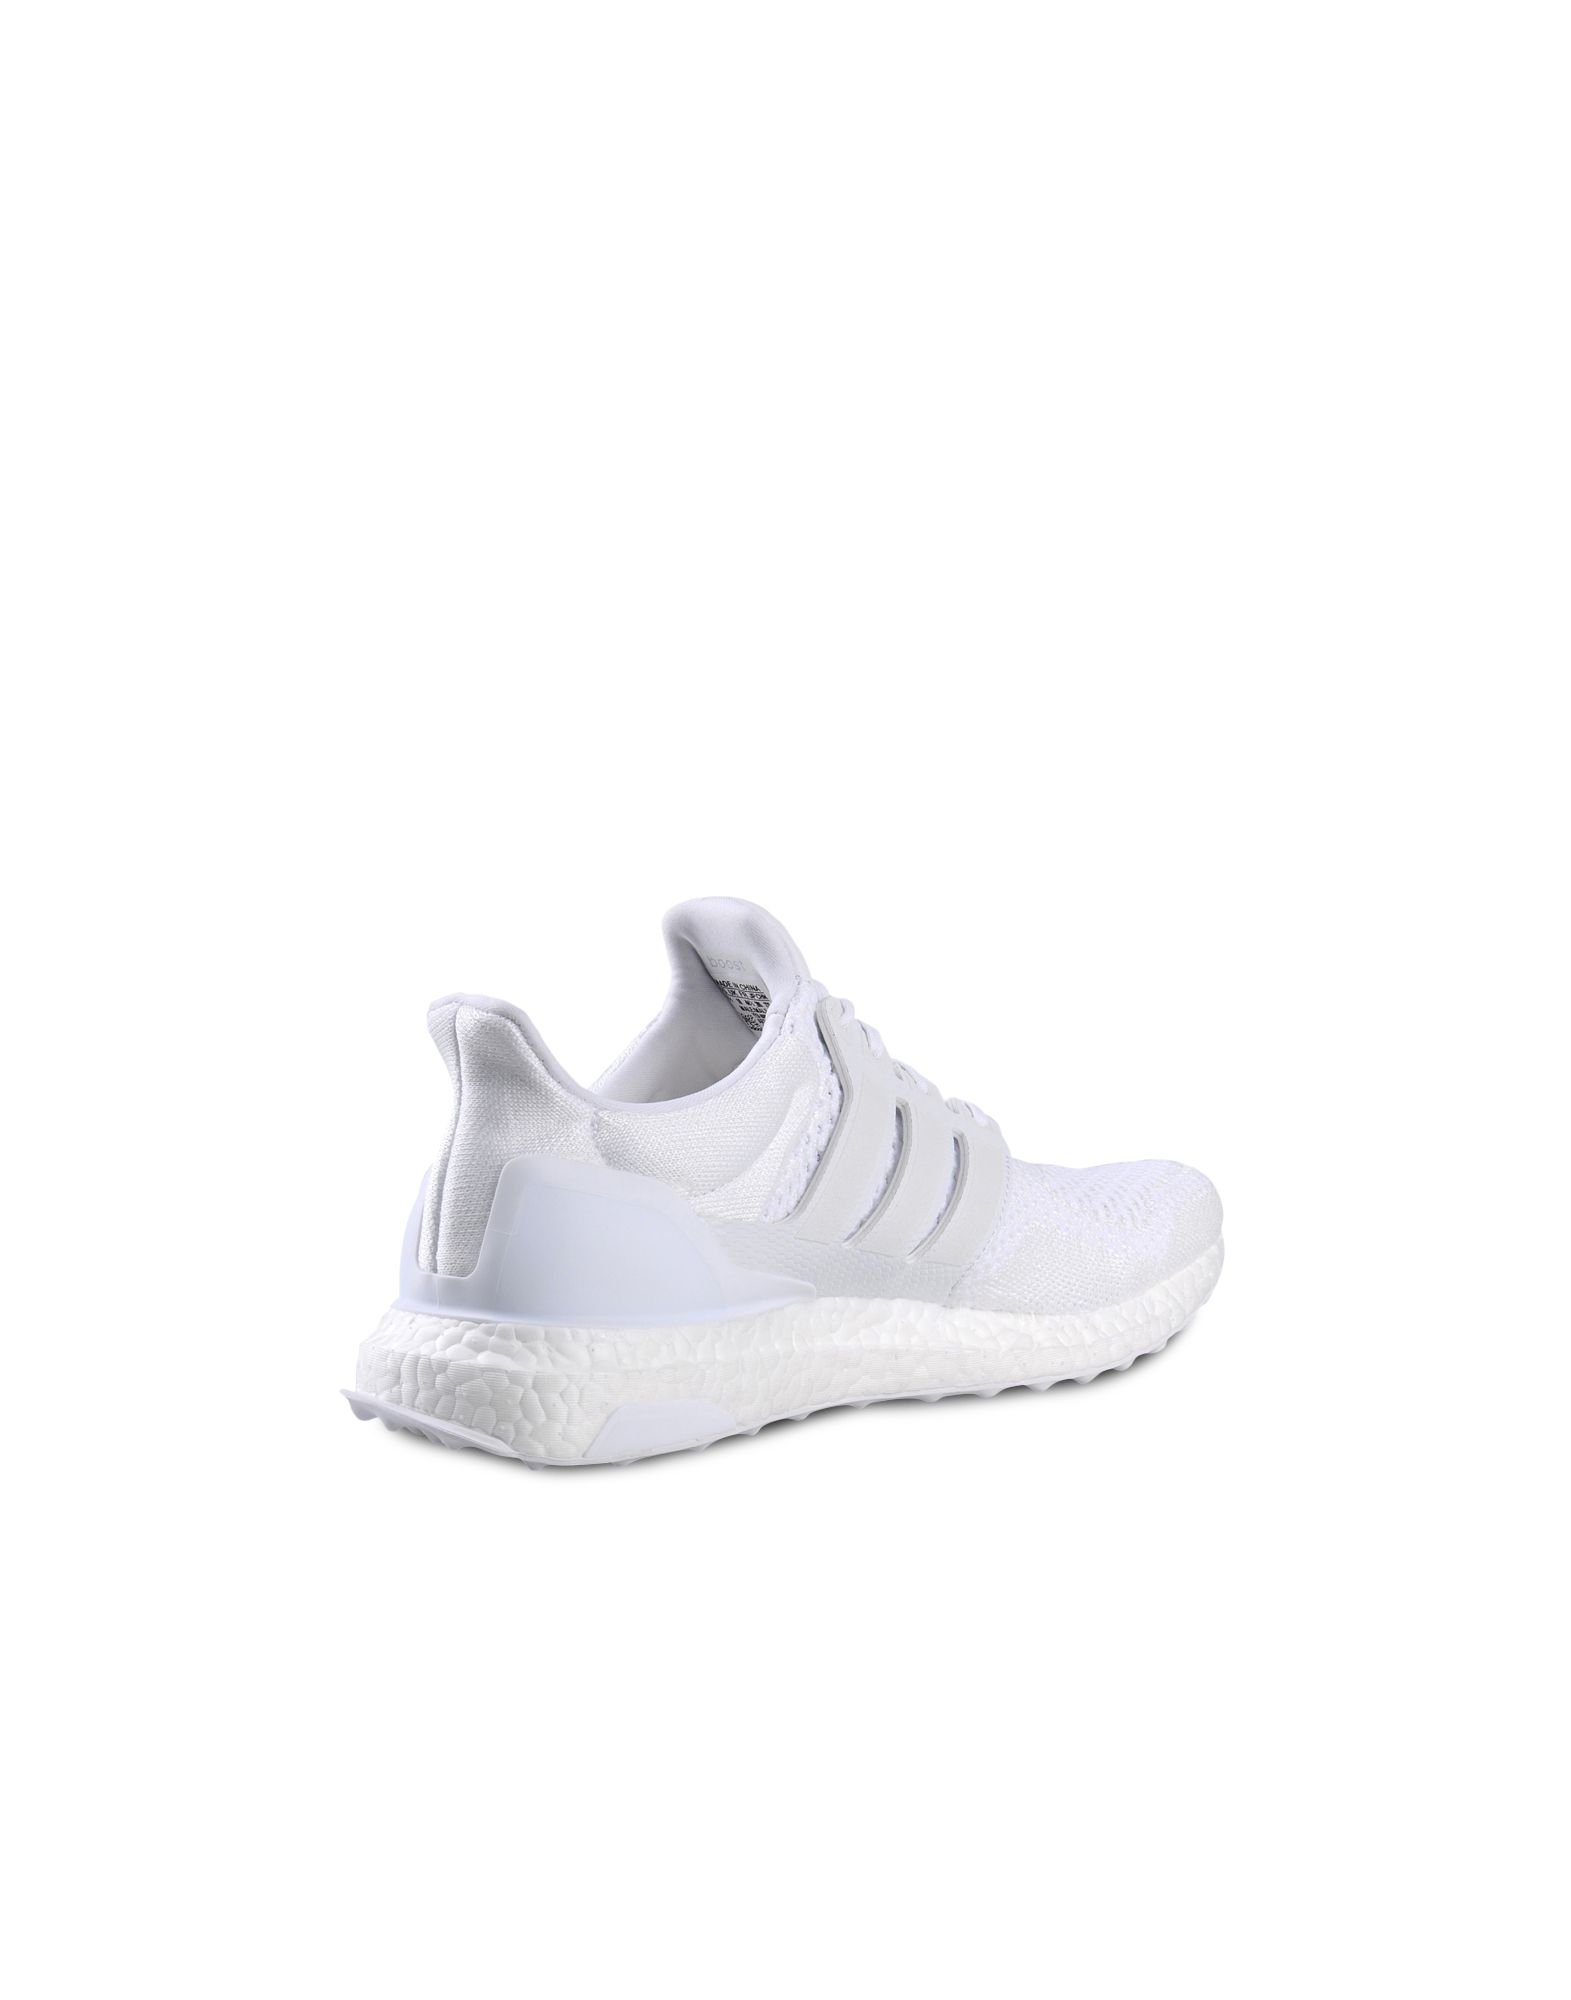 adidas ultra boost j and d